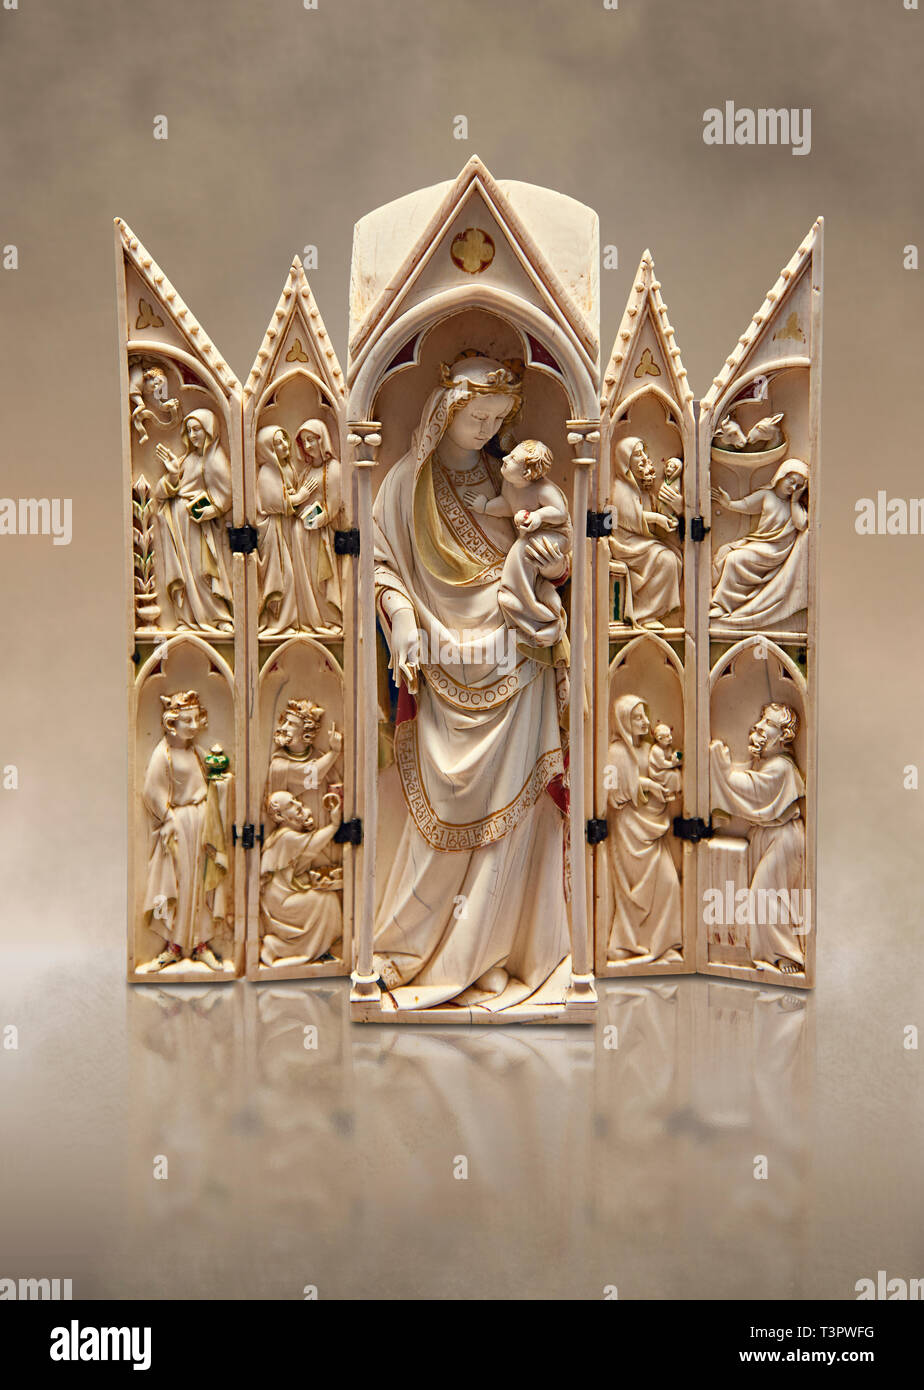 Medieval Gothic ivory tabernacle depicting the Virgin and Child with scenes from the Annunciation, Nativity, the adoration of the Magi and the present - Stock Image